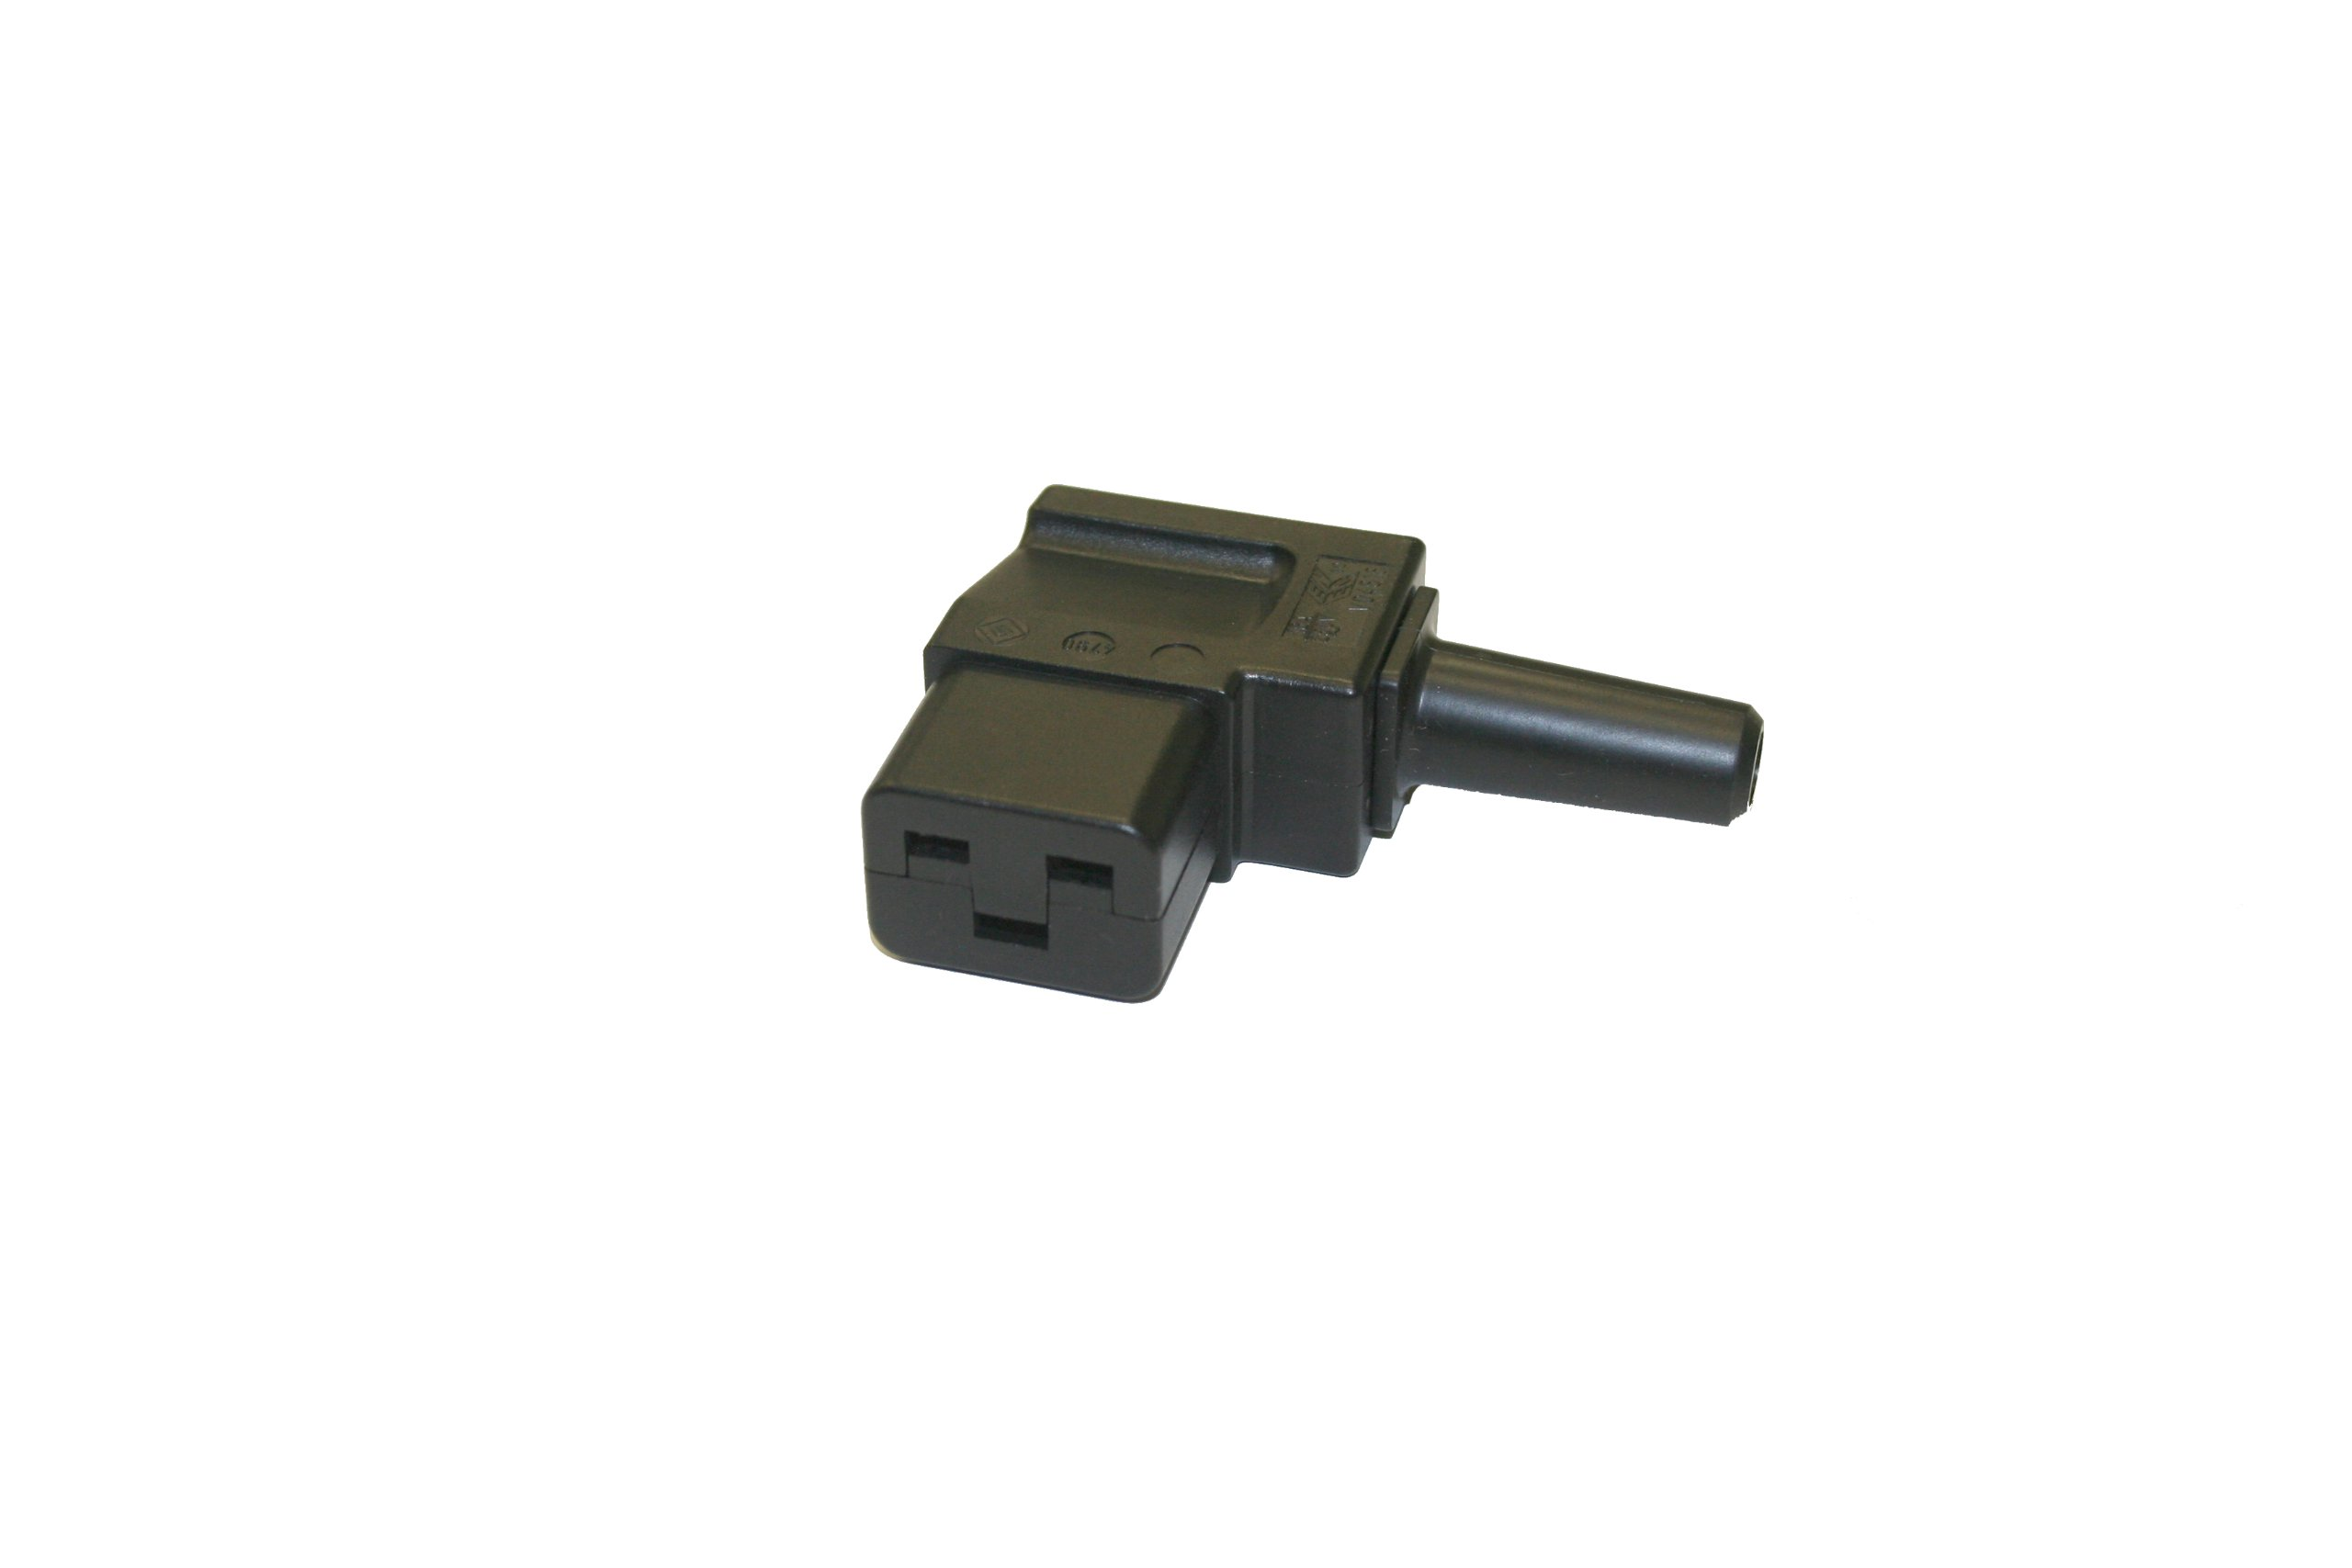 Interpower 83011310 IEC 60320 C19 Angled Rewireable Connector, IEC 60320 C19 Socket Type, Black, 16A/21A Rating, 250VAC Rating